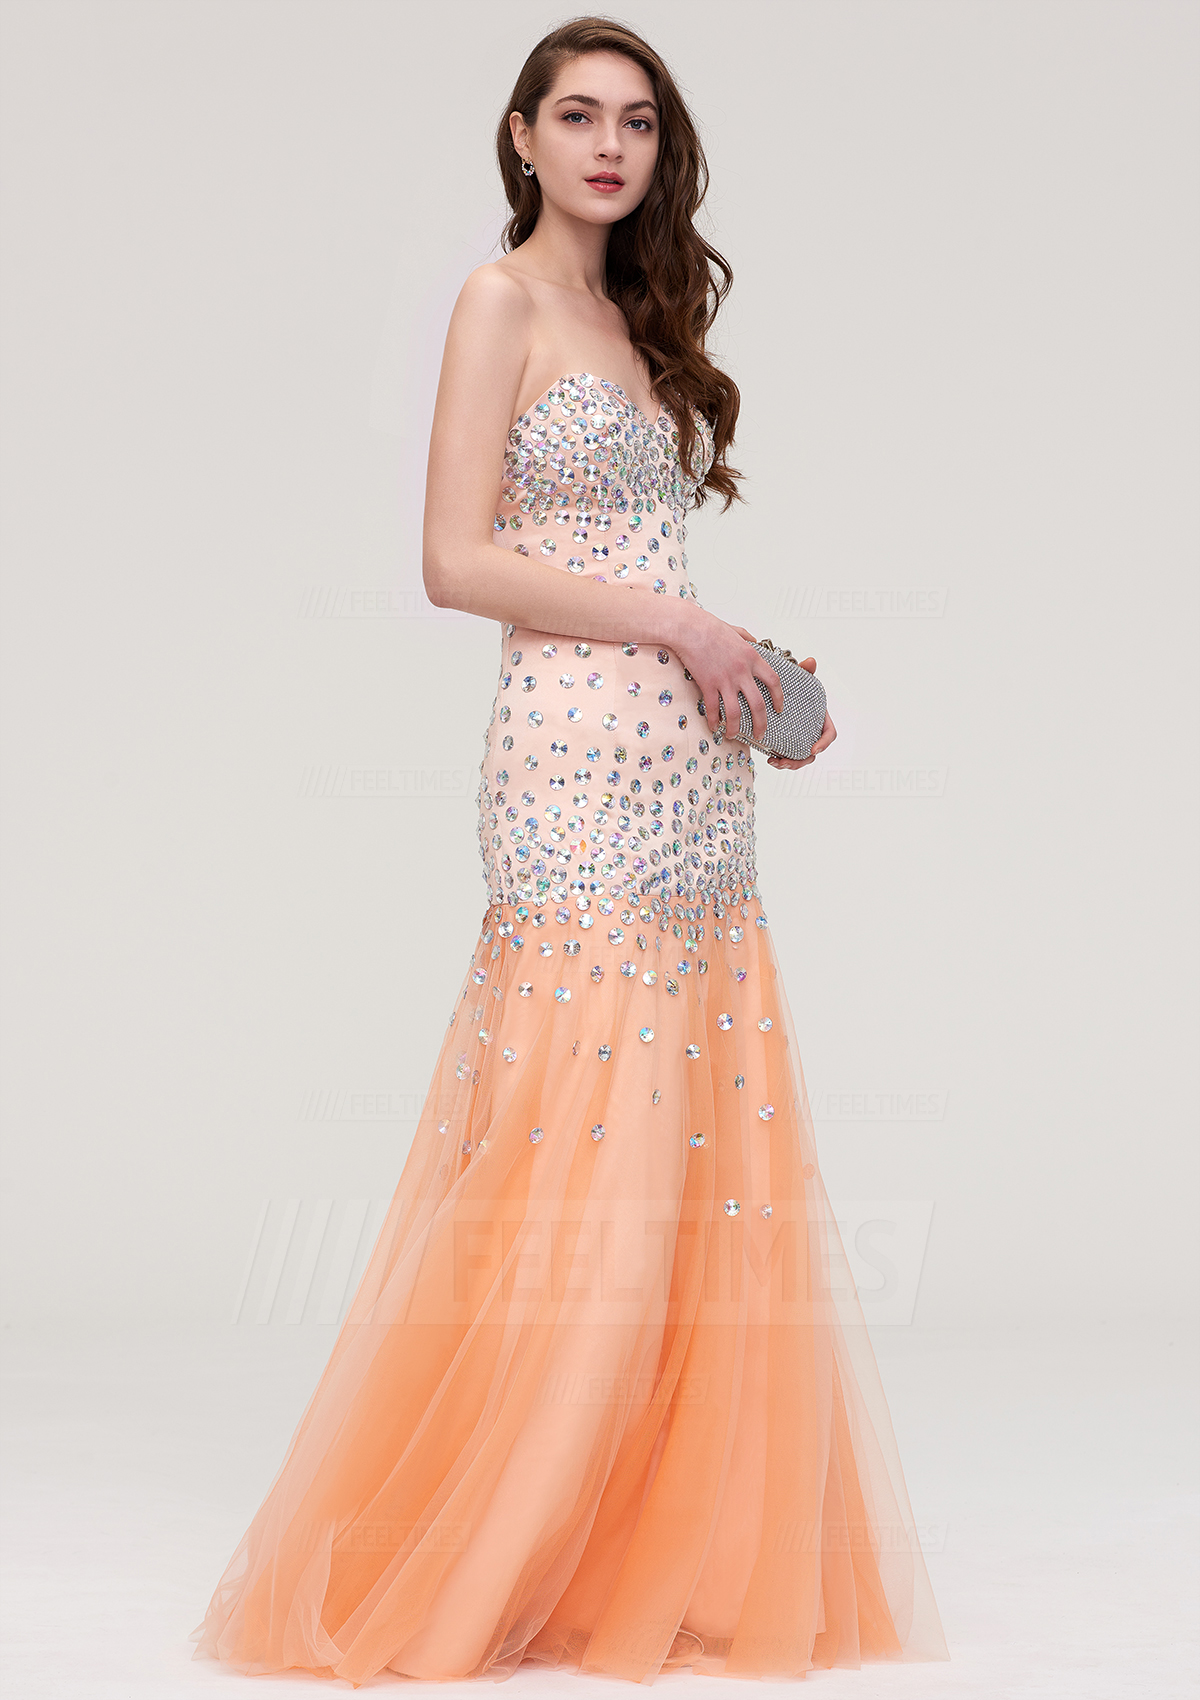 A-line/Princess Strapless Sleeveless Long/Floor-Length Tulle Prom Dress With Crystal Beading